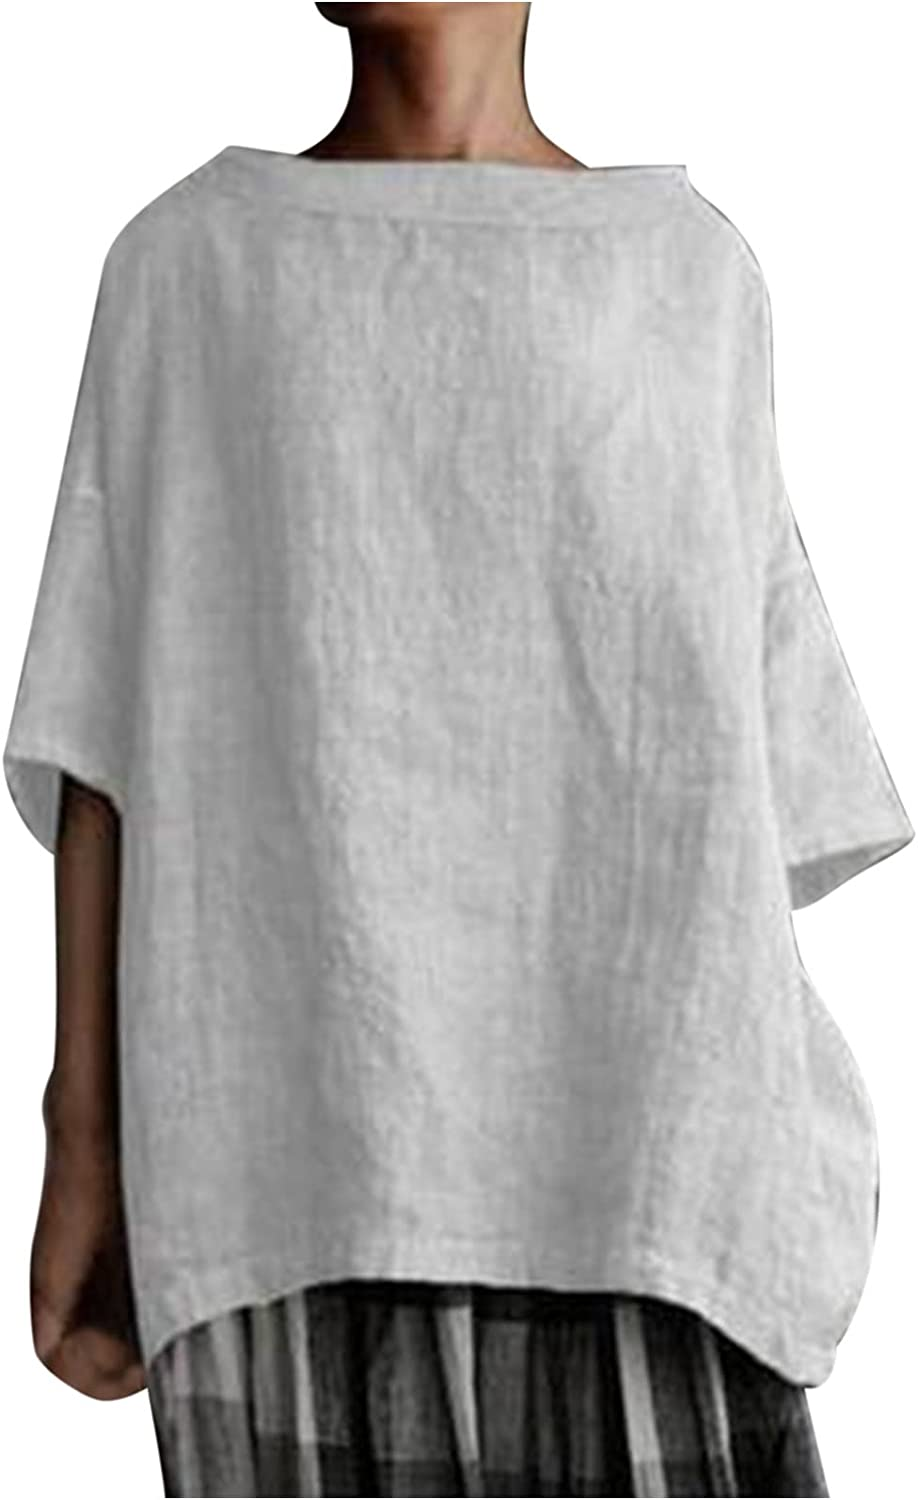 Women's Plus Size Tops and Blouses Round Neck Solid Color Cotton and Linen Three Quarter Sleeves Tops